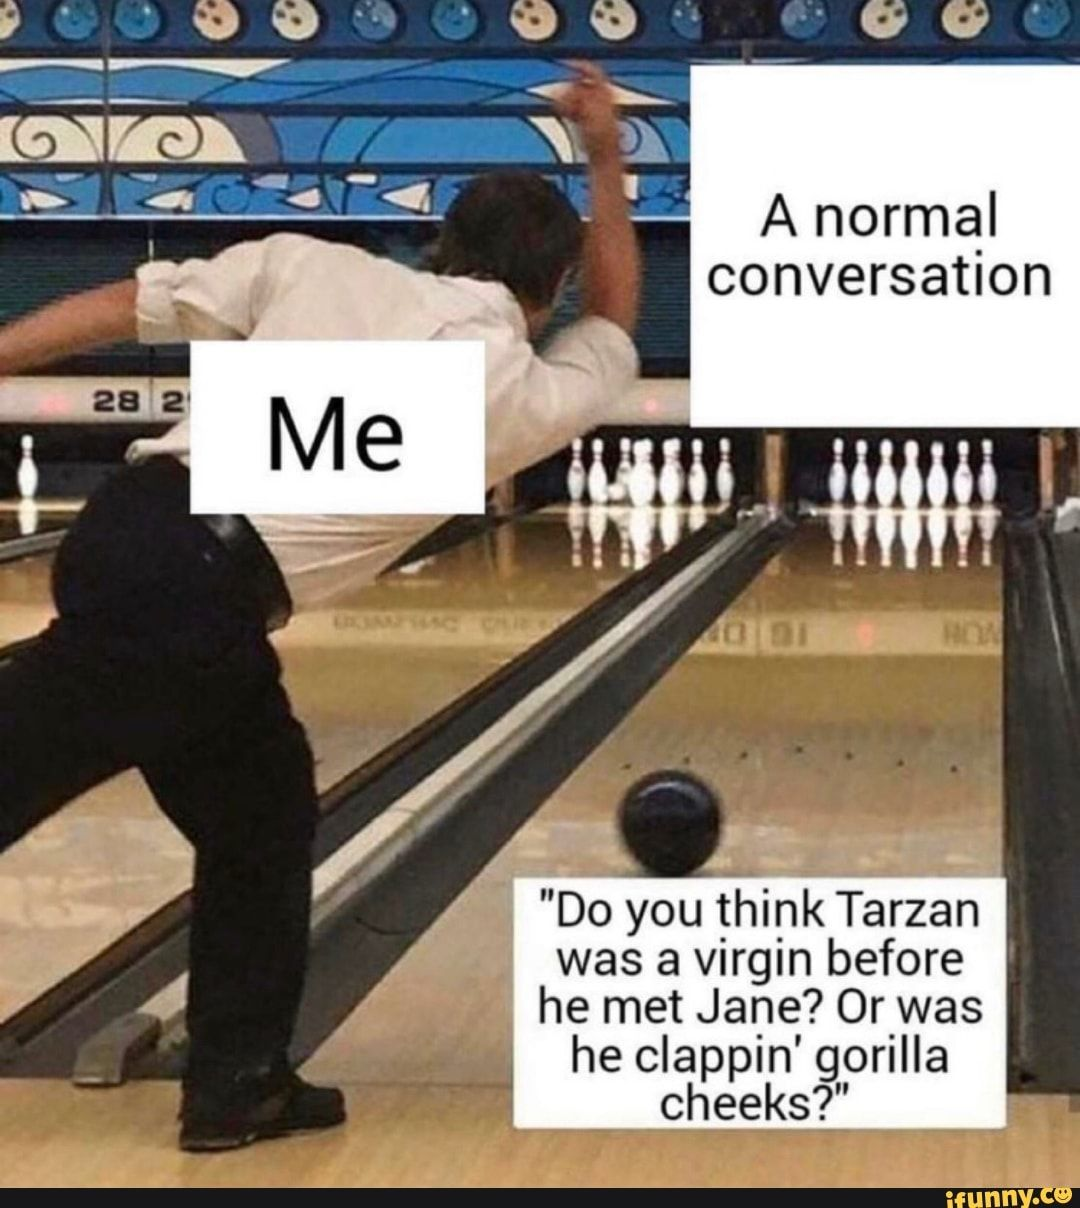 A Normal Conversation Do You Think Tarzan Was A Virgin Before He Met Jane Or Was He Clappin Gorilla Cheeks Fi Ifunny Math Memes Funny Memes New Memes